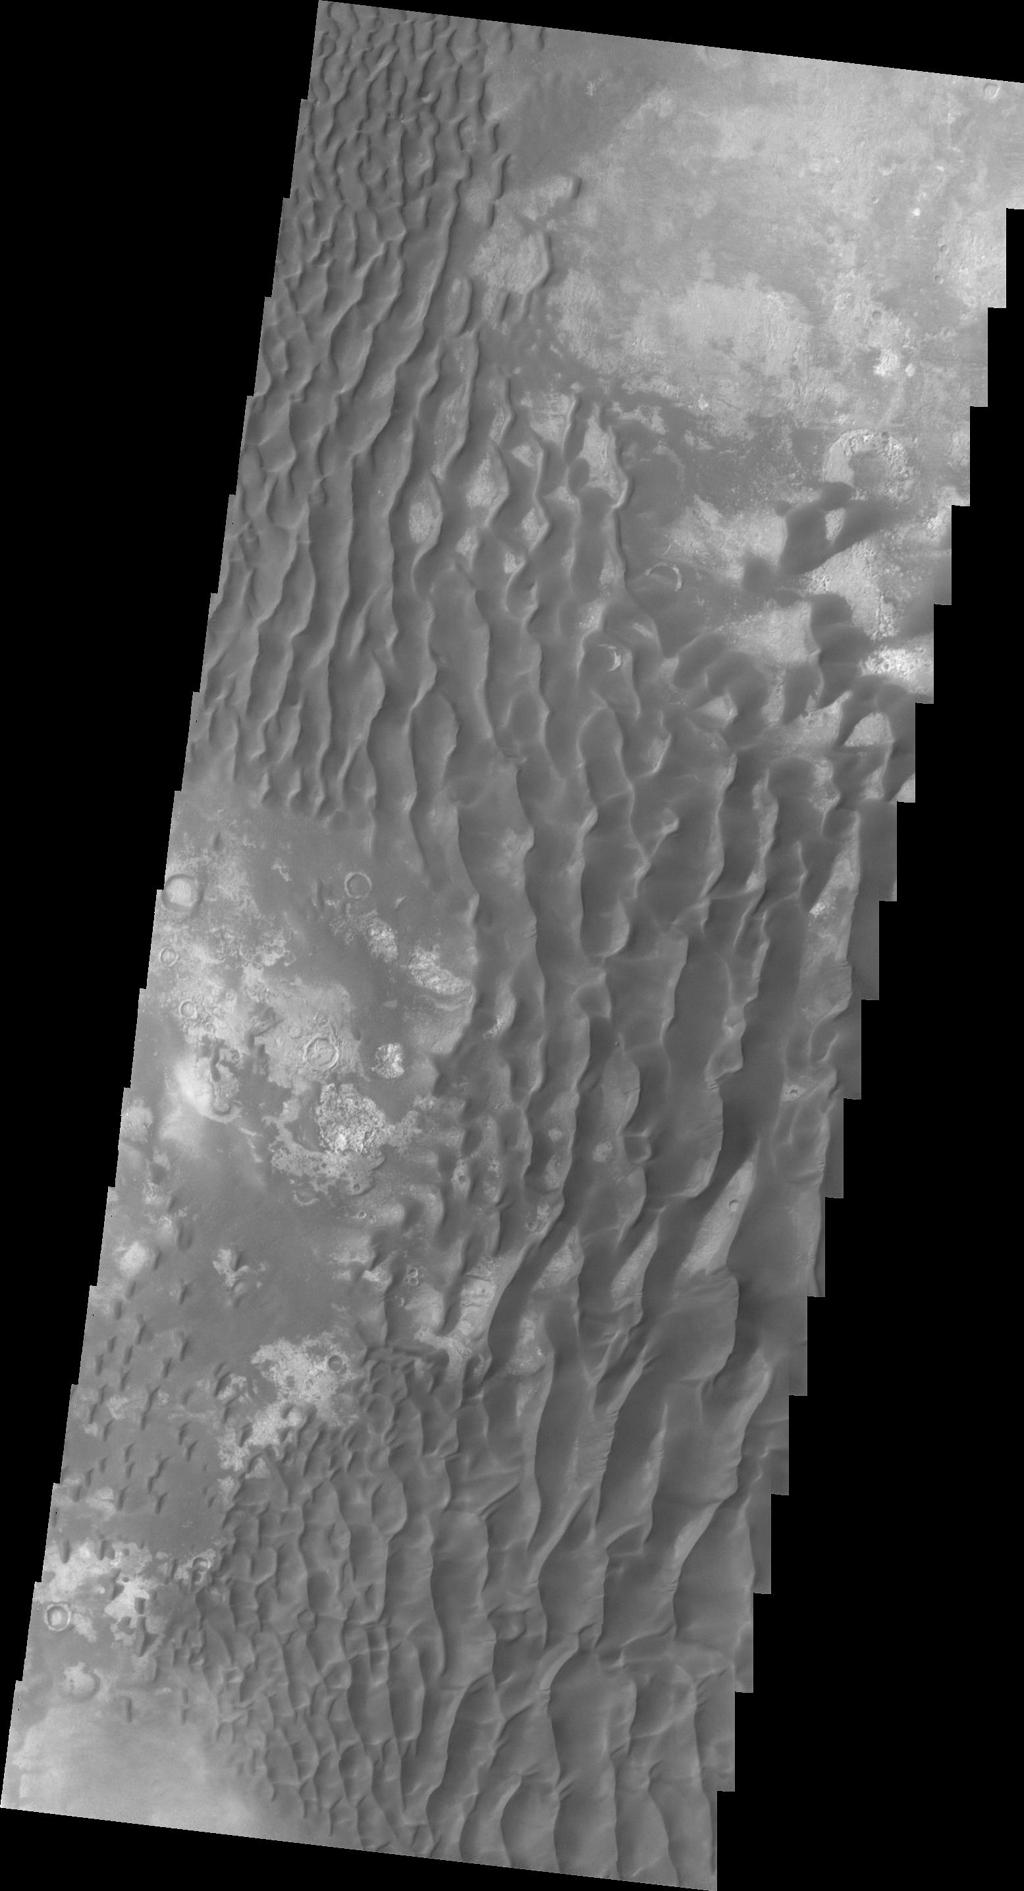 This daytime infrared image of Kaiser Crater, taken by NASA's 2001 Mars Odyssey spacecraft, shows the majority of the dune field located on the floor of the crater.